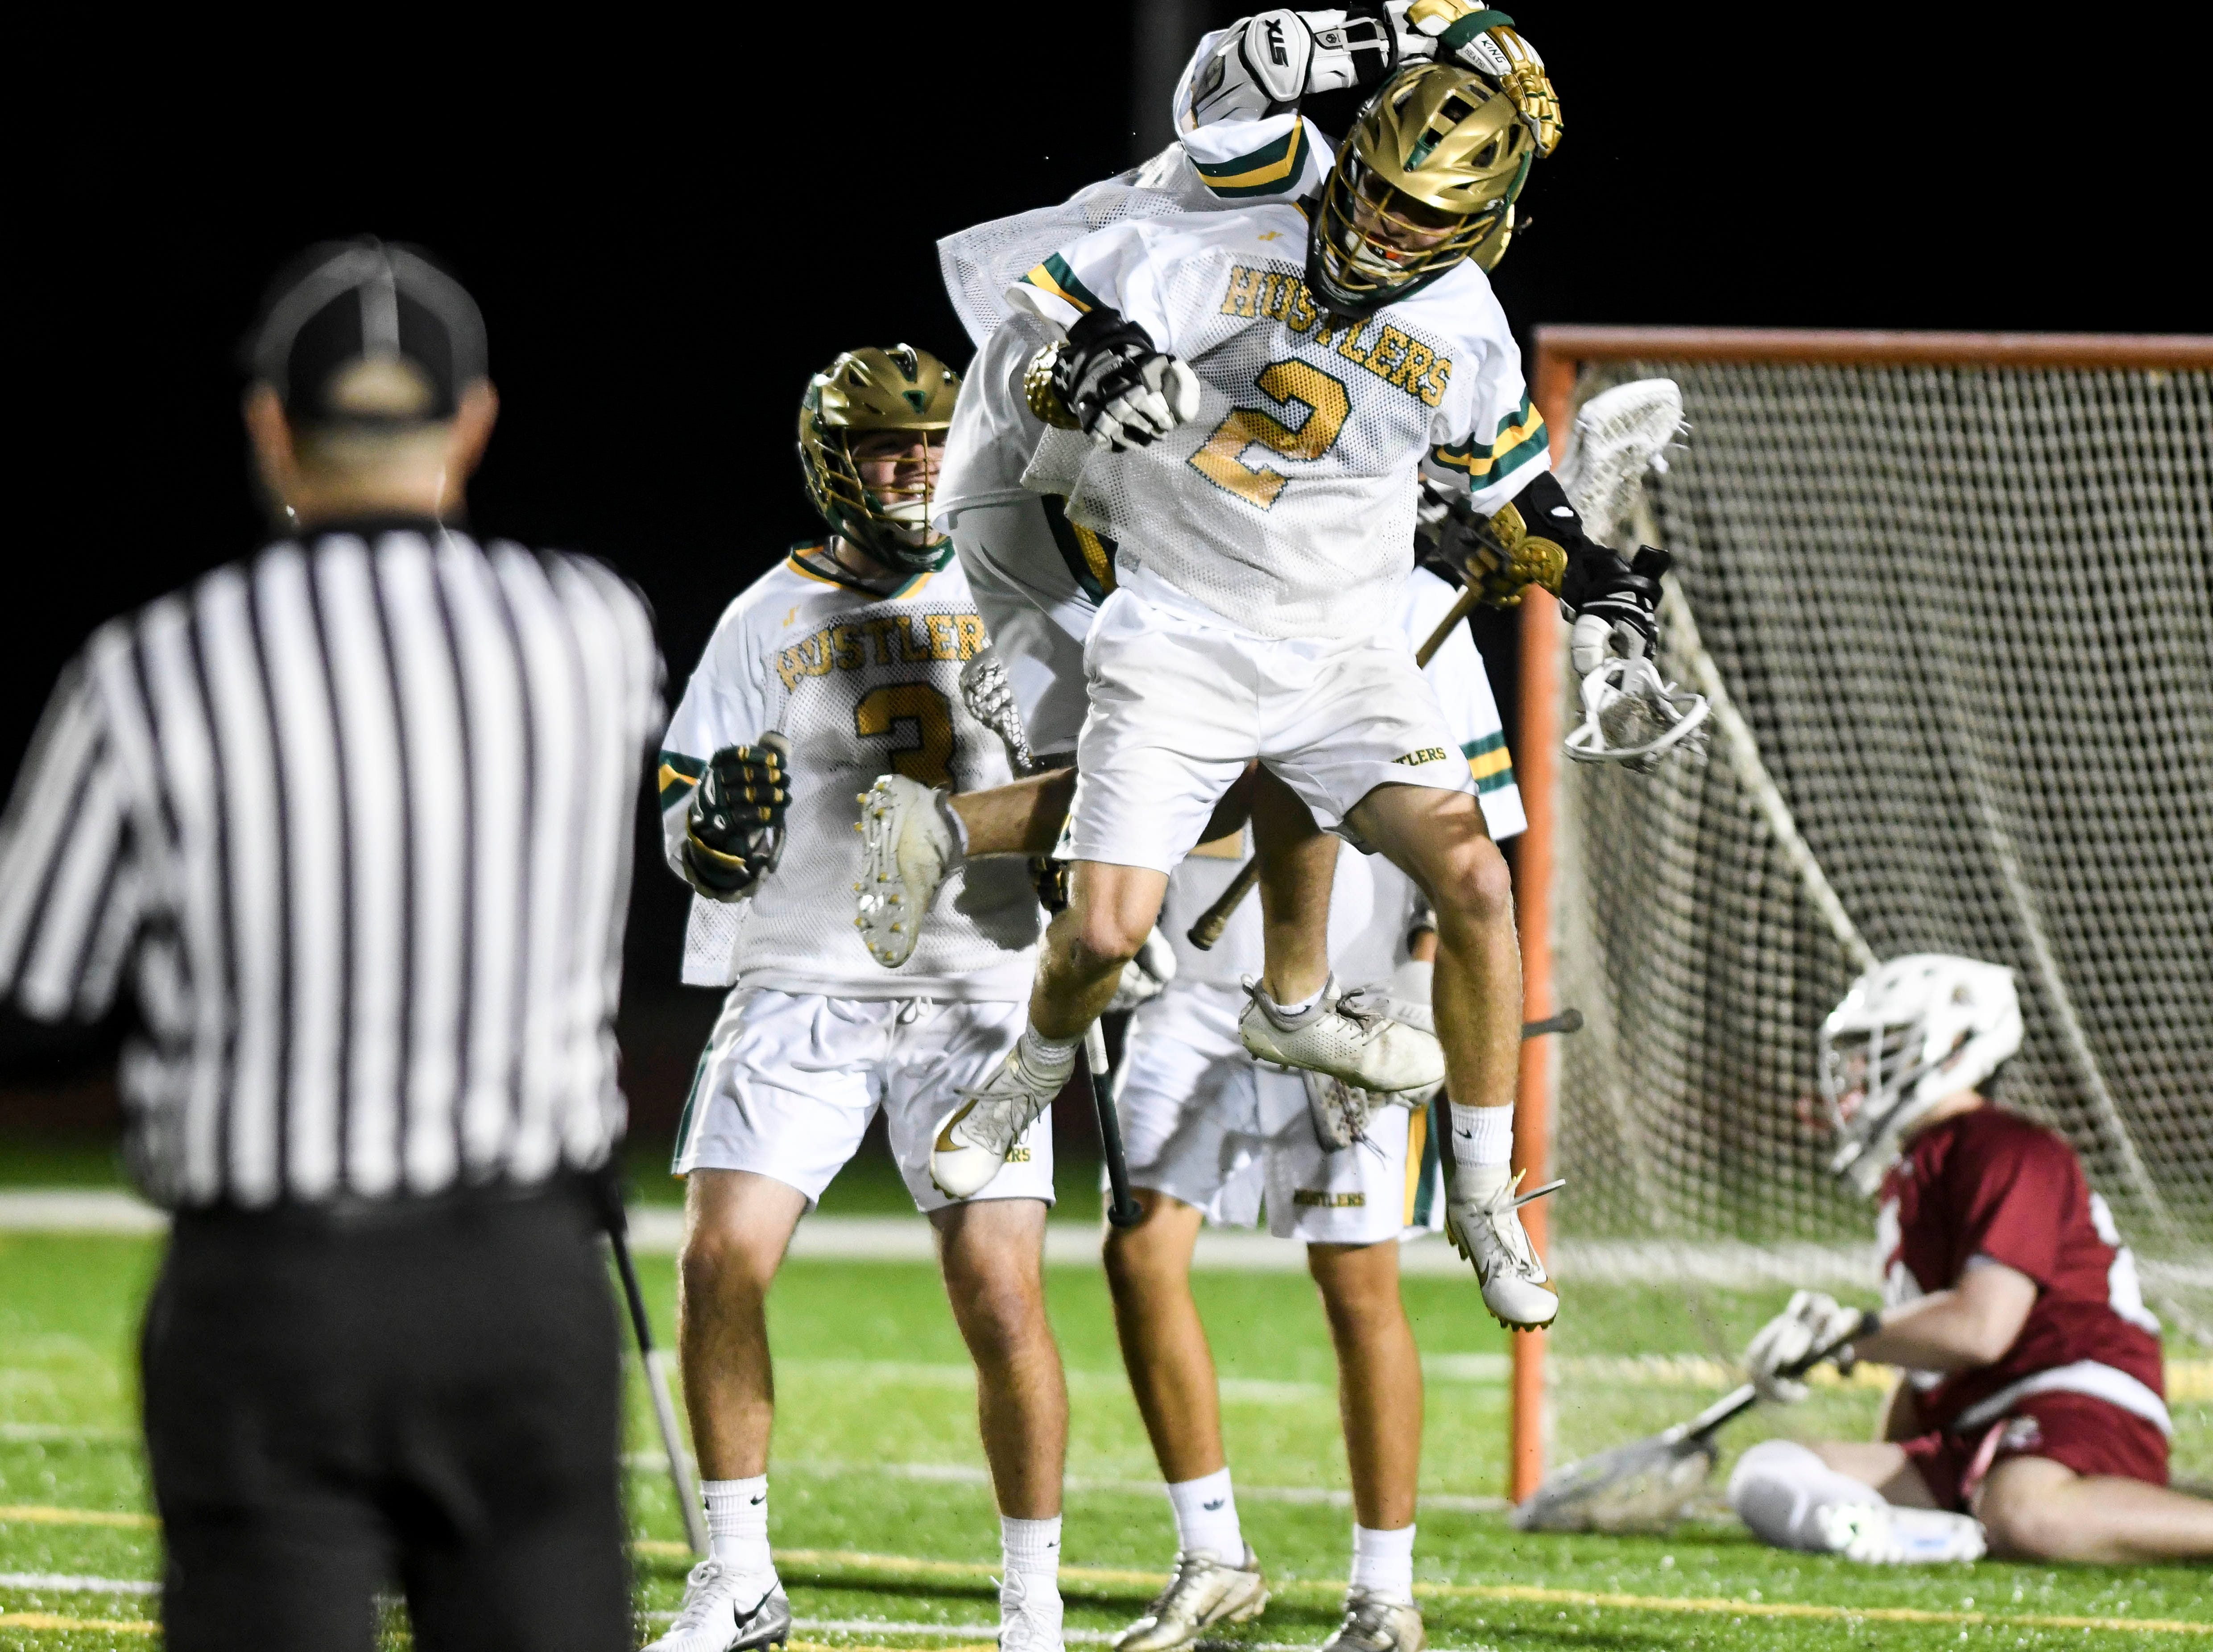 Jeremy Goslant of Melbourne Central Catholic (2) celebrates a goal with teammates during Tuesday's game in Melbourne.